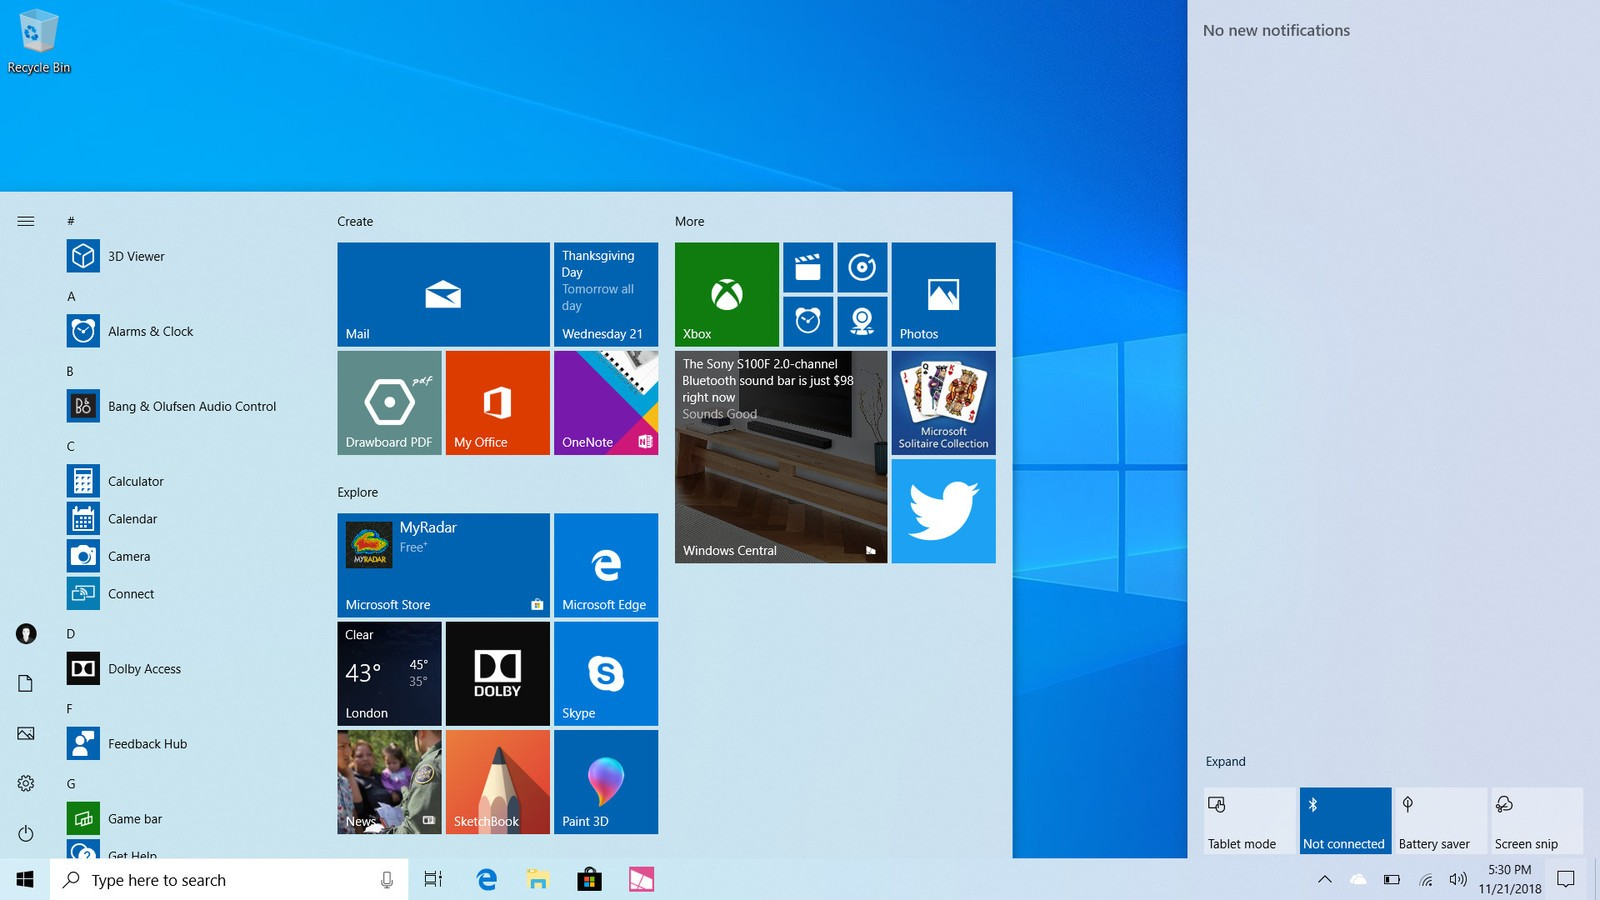 Windows 10 19H1: All the changes we know so far